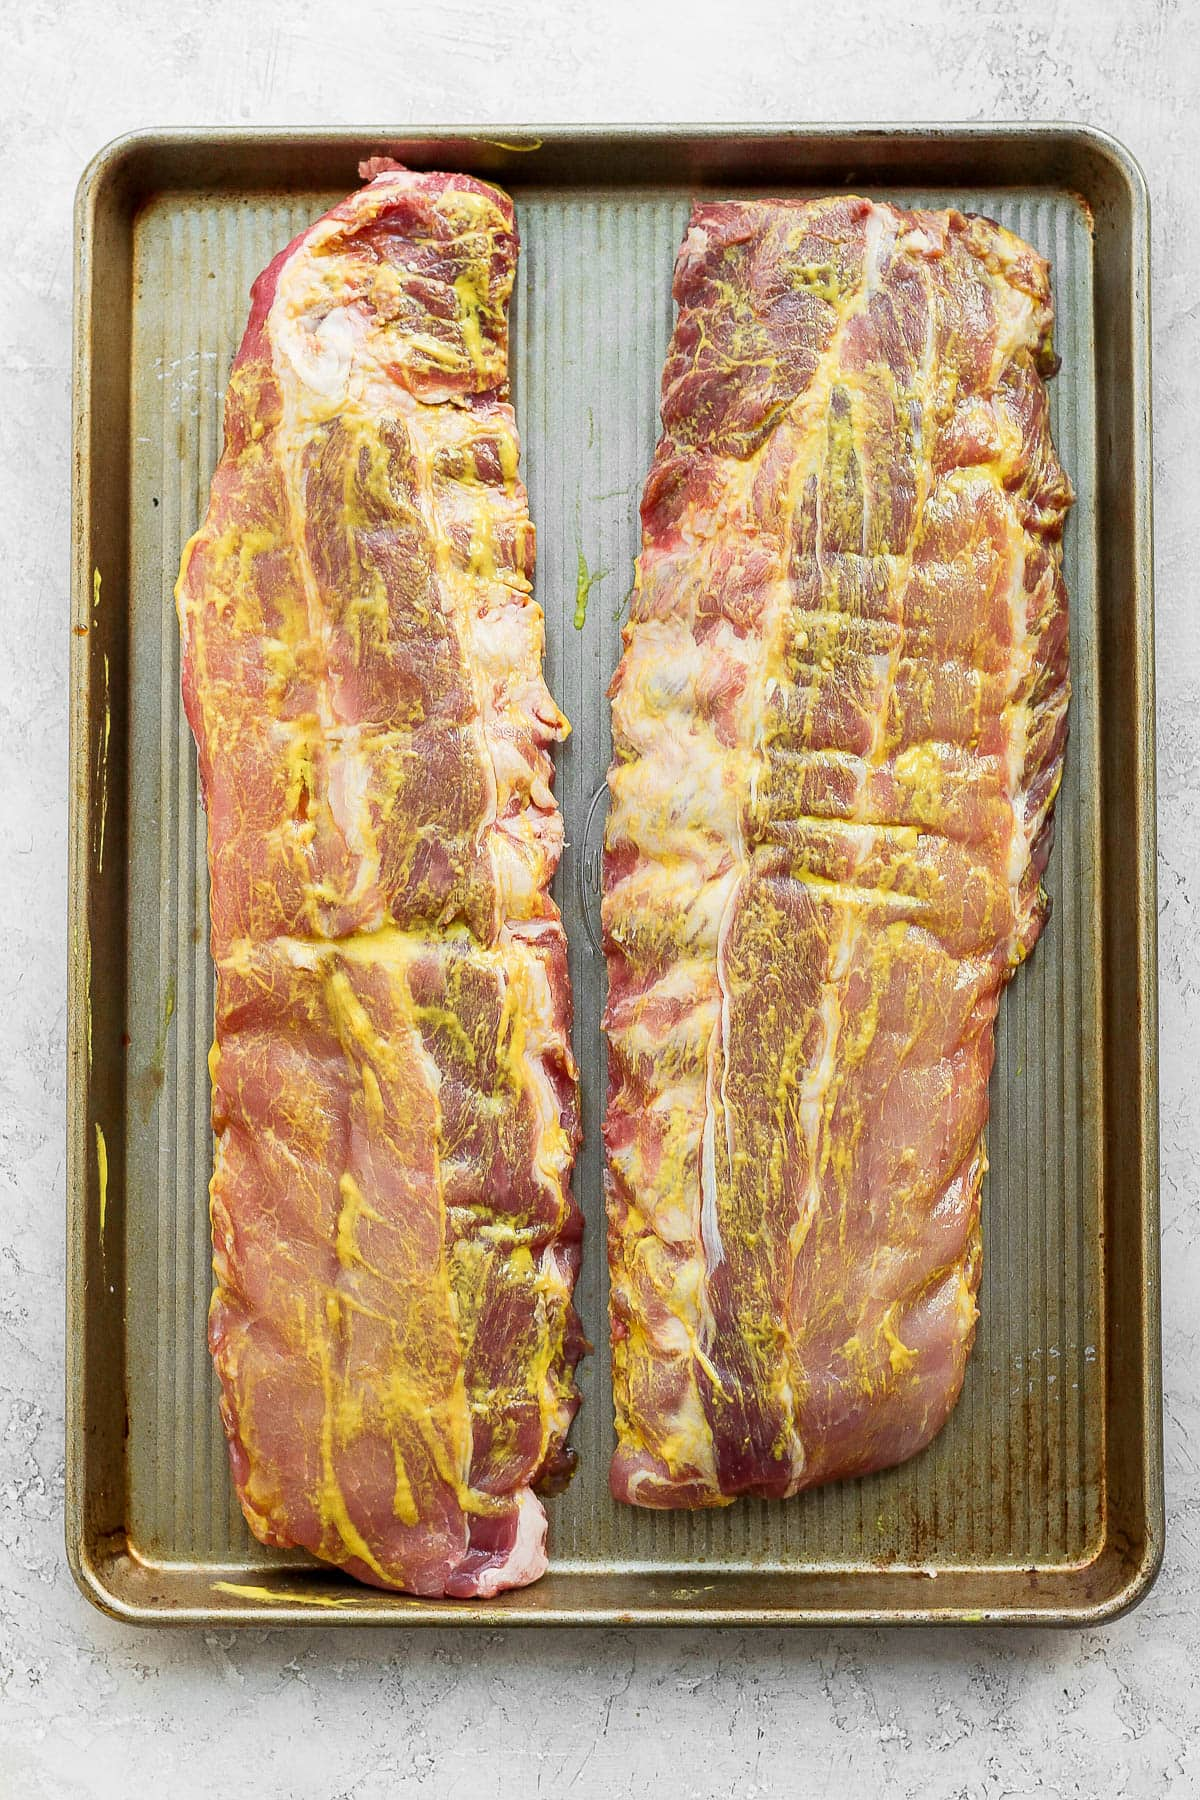 Two racks of ribs sitting on a metal baking sheet and yellow mustard rubbed all over them.